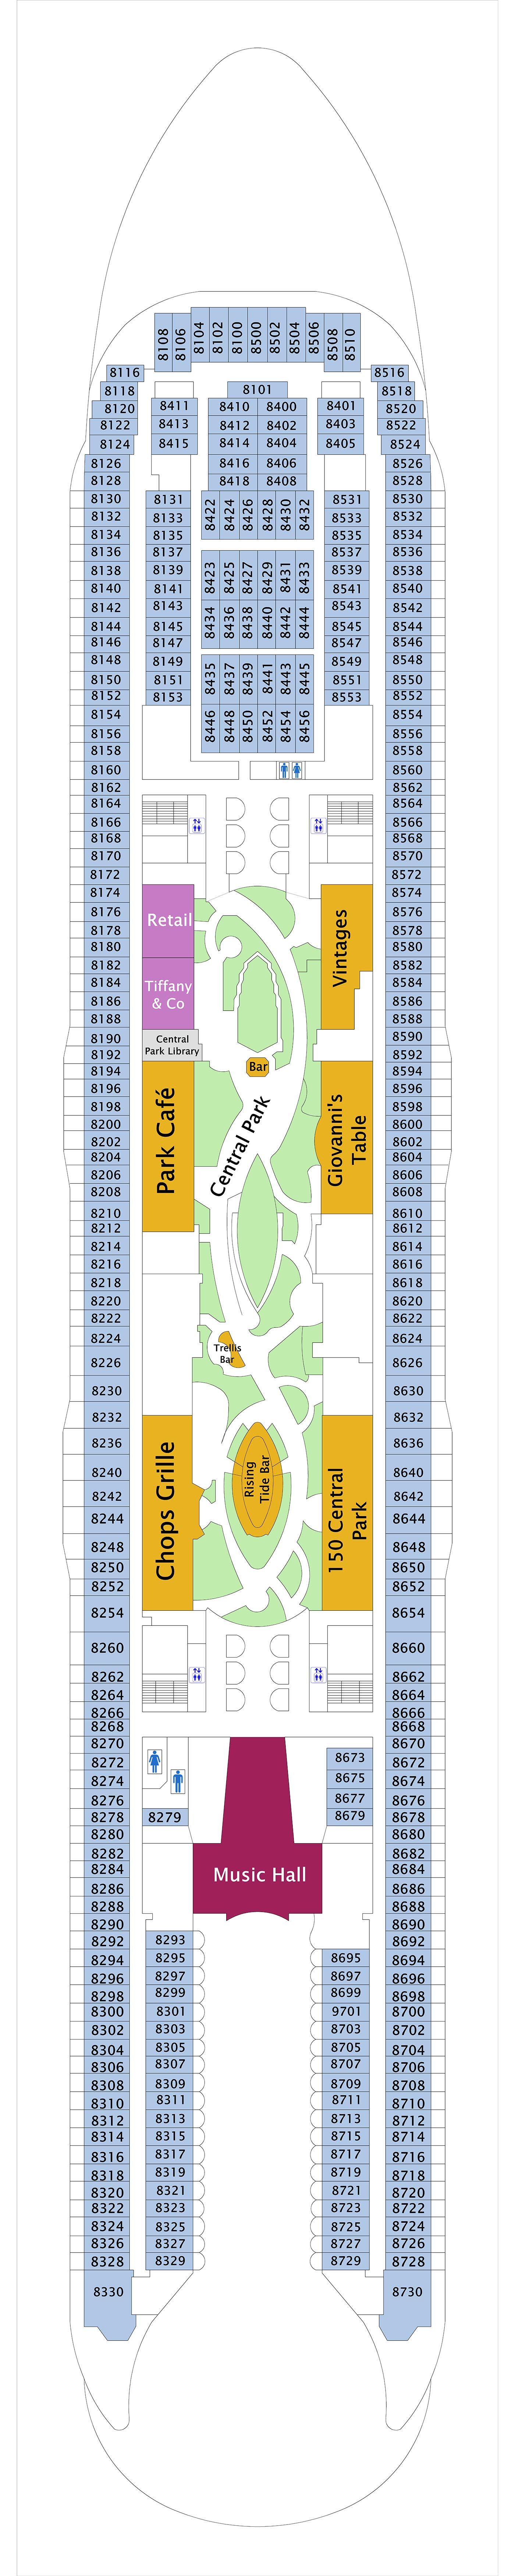 Oasis of the Seas deck plan 8